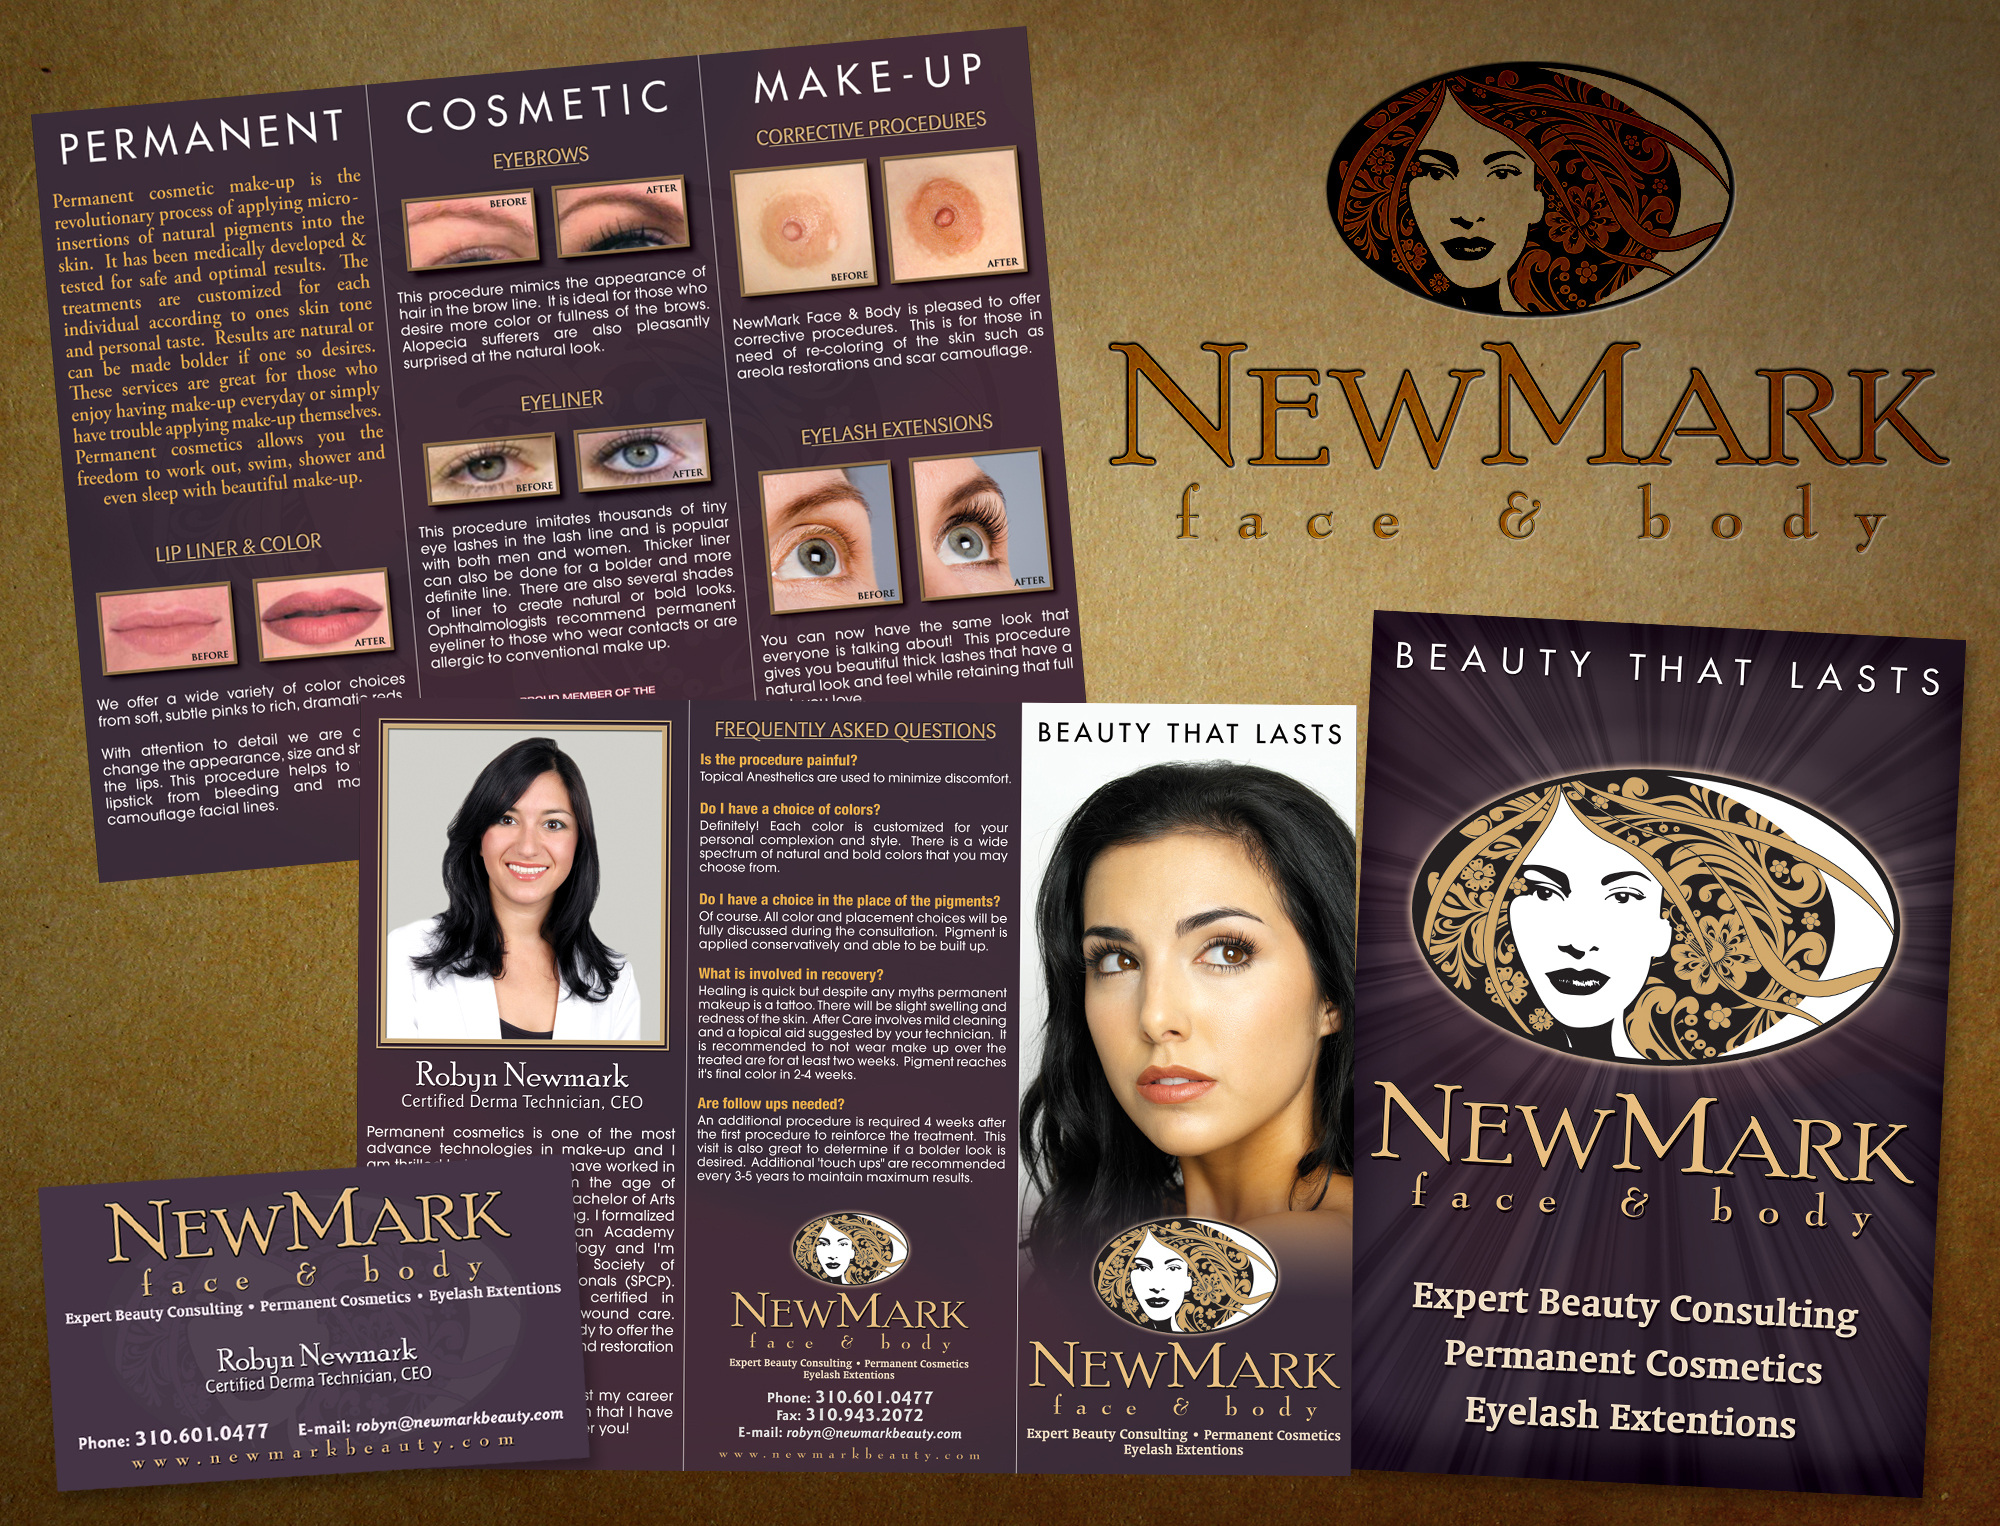 NewMark Face & Body